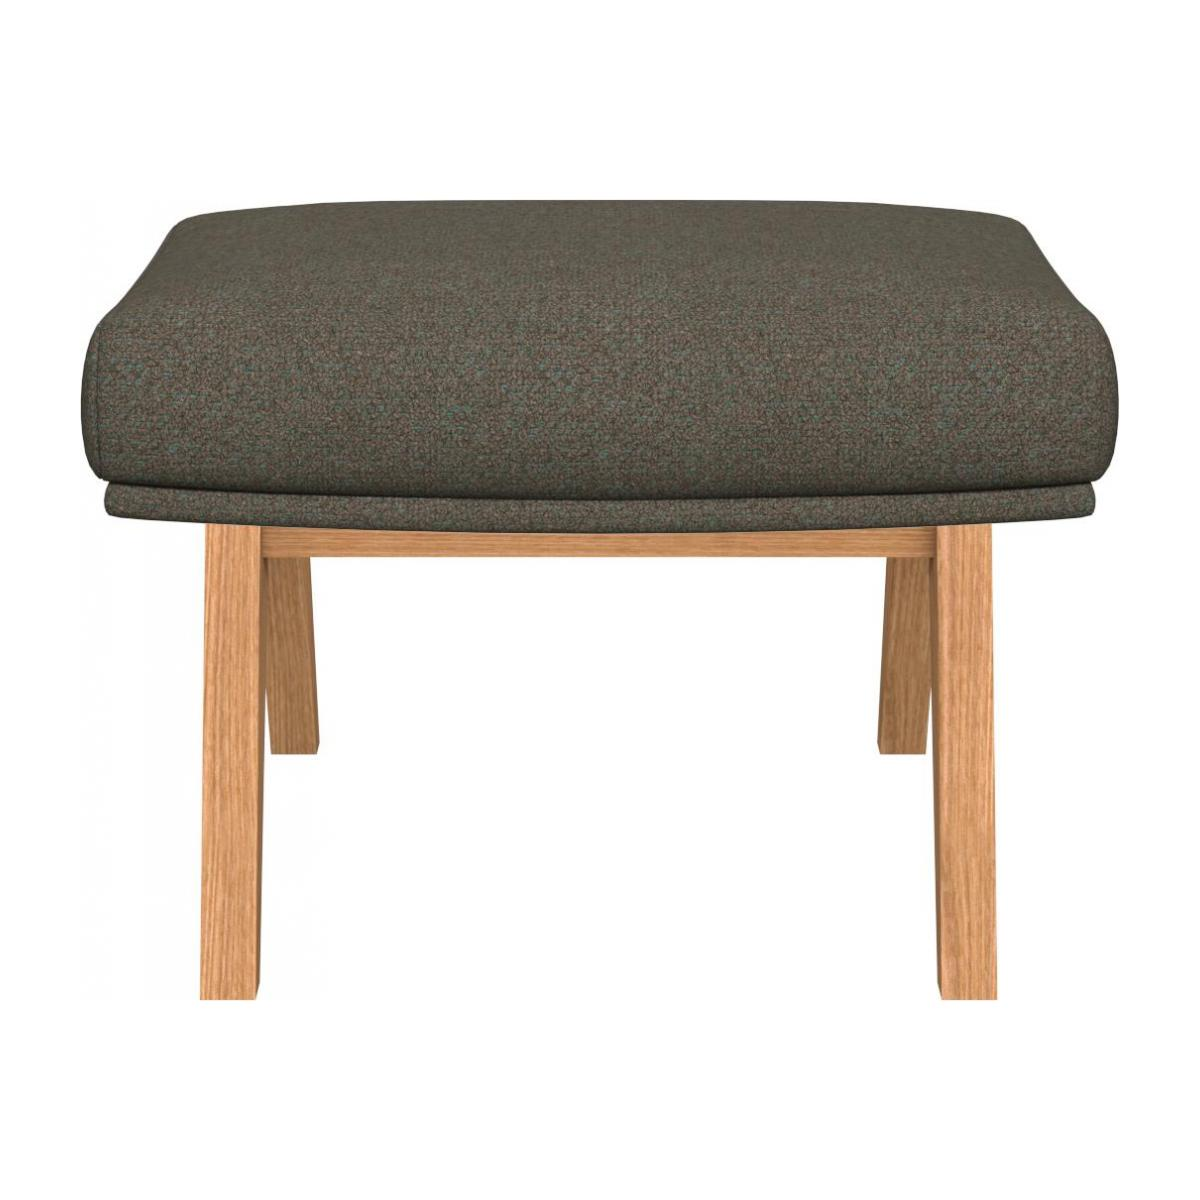 Footstool in Lecce fabric, slade grey with oak legs n°2